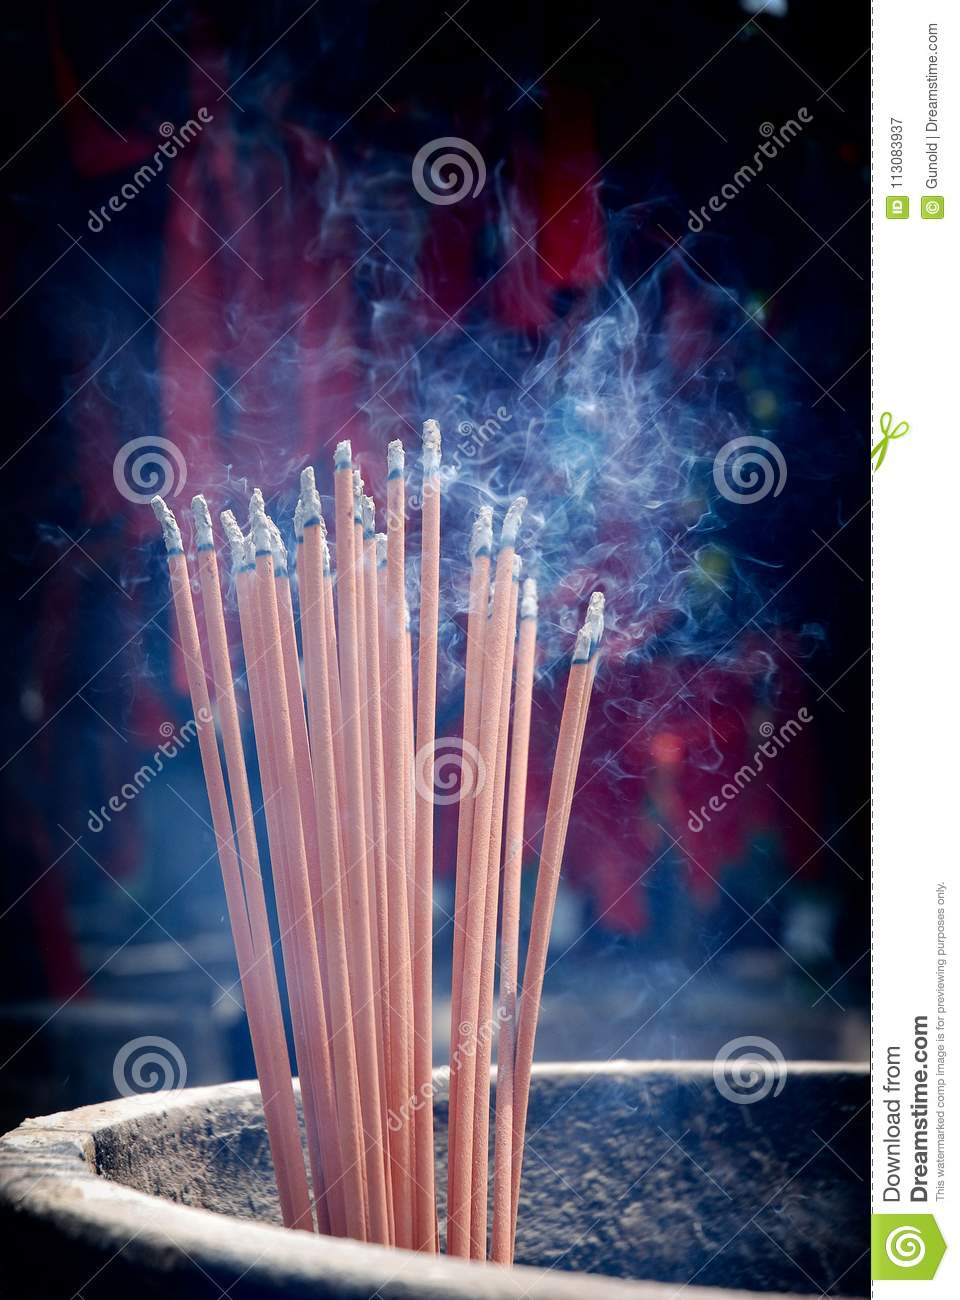 A bunch of glowing incense sticks